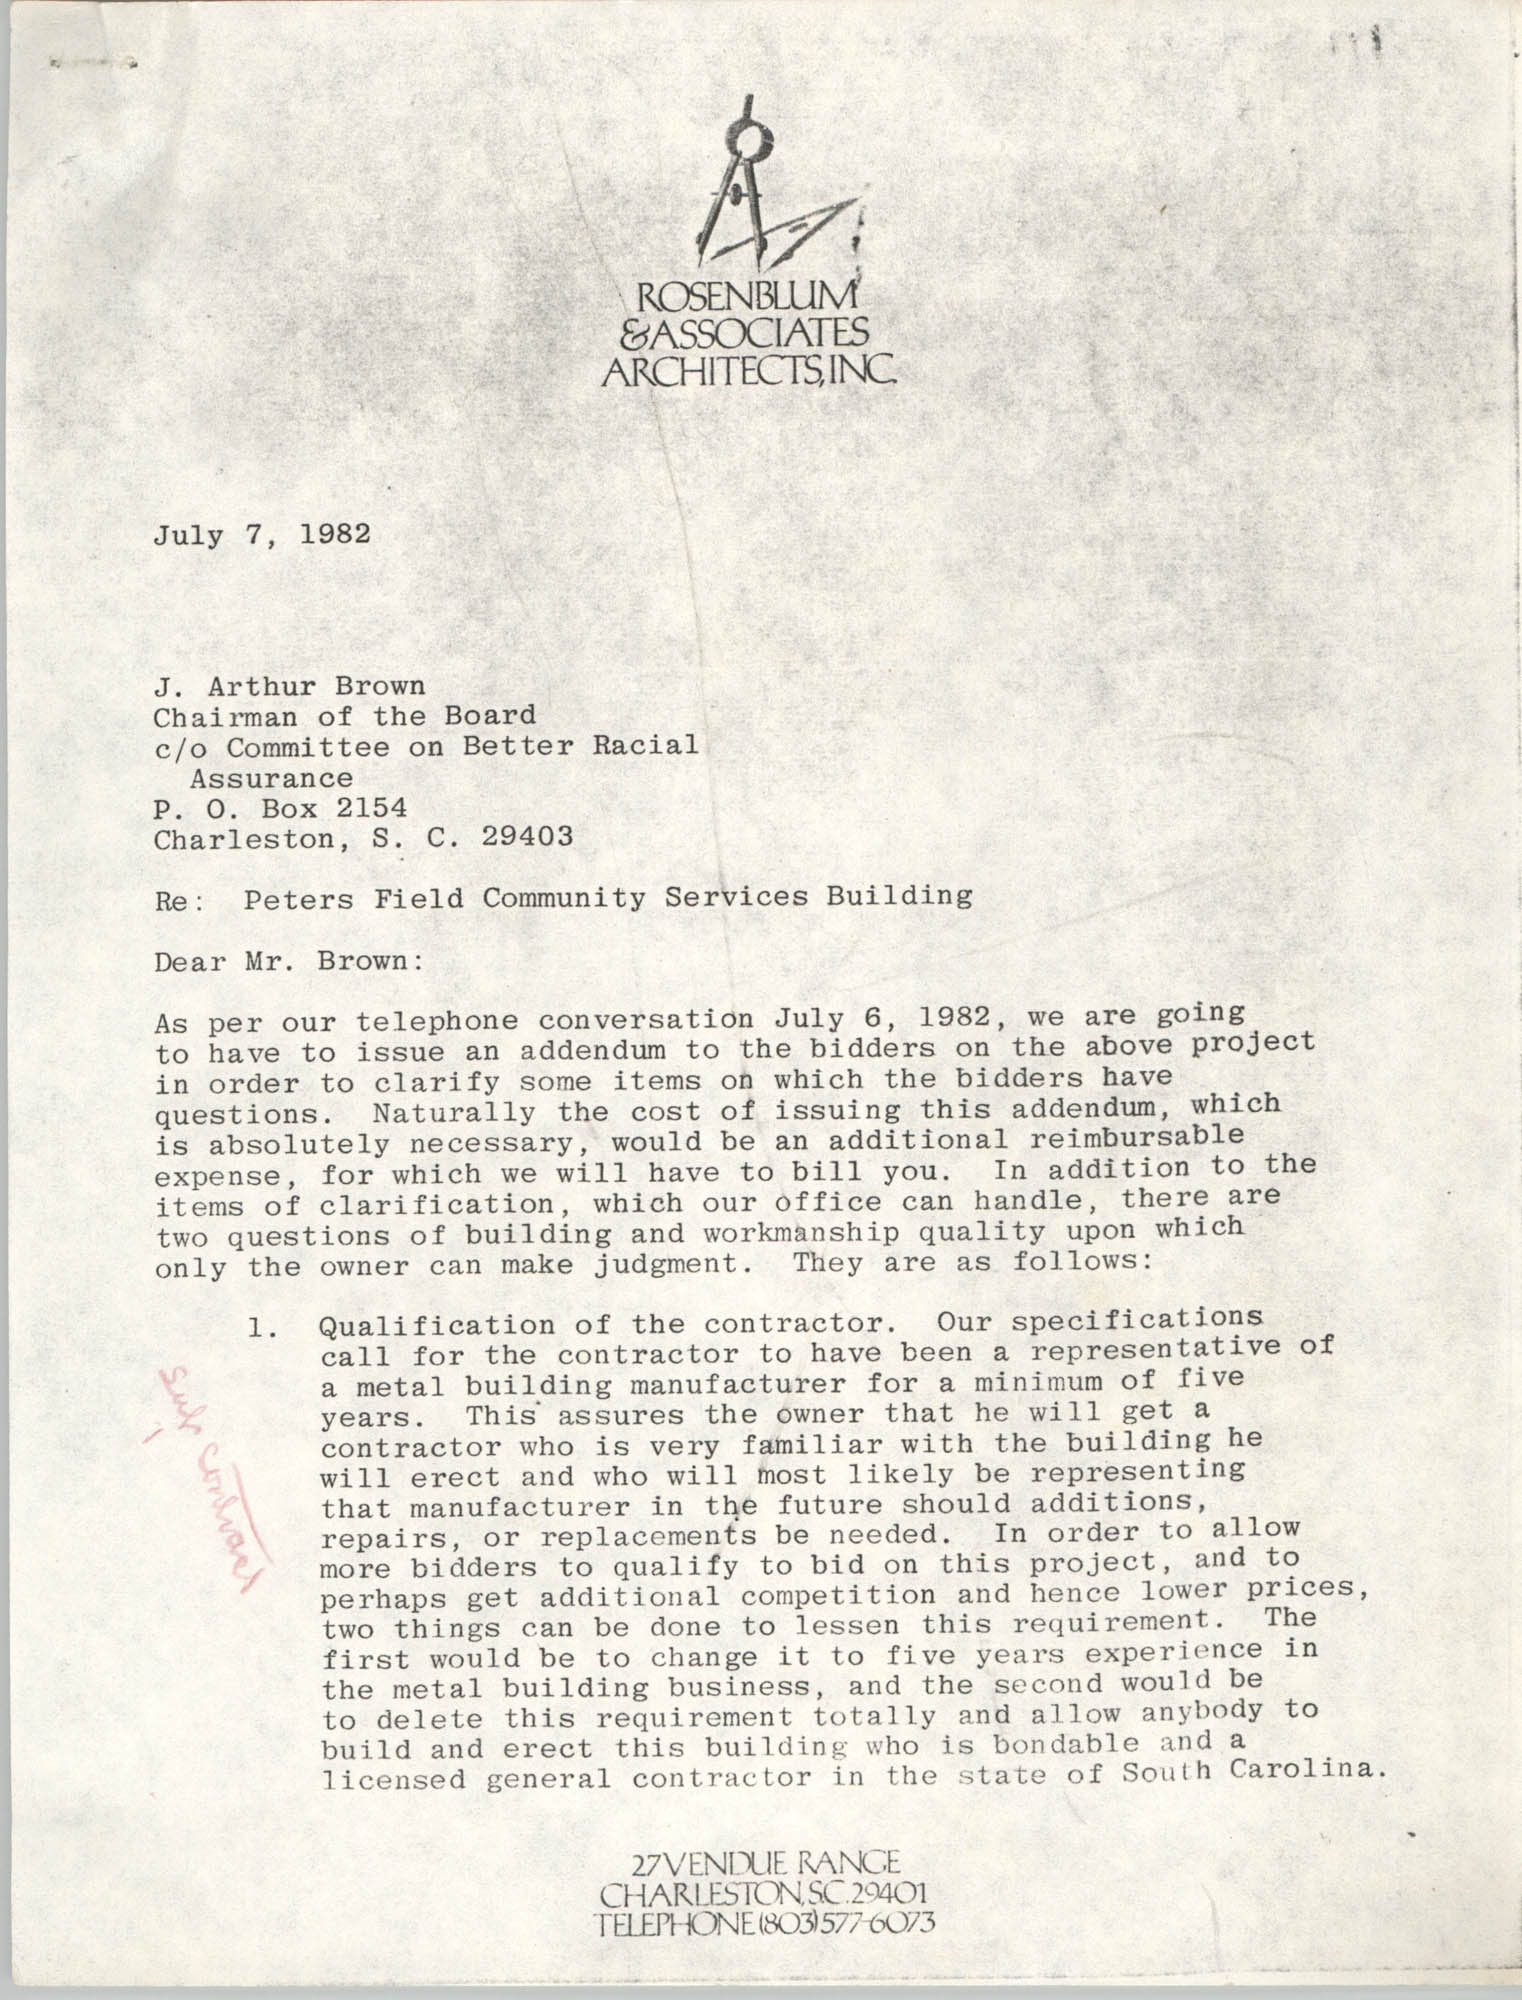 Letter from Jeffrey Rosenblum to J. Arthur Brown, July 7, 1982